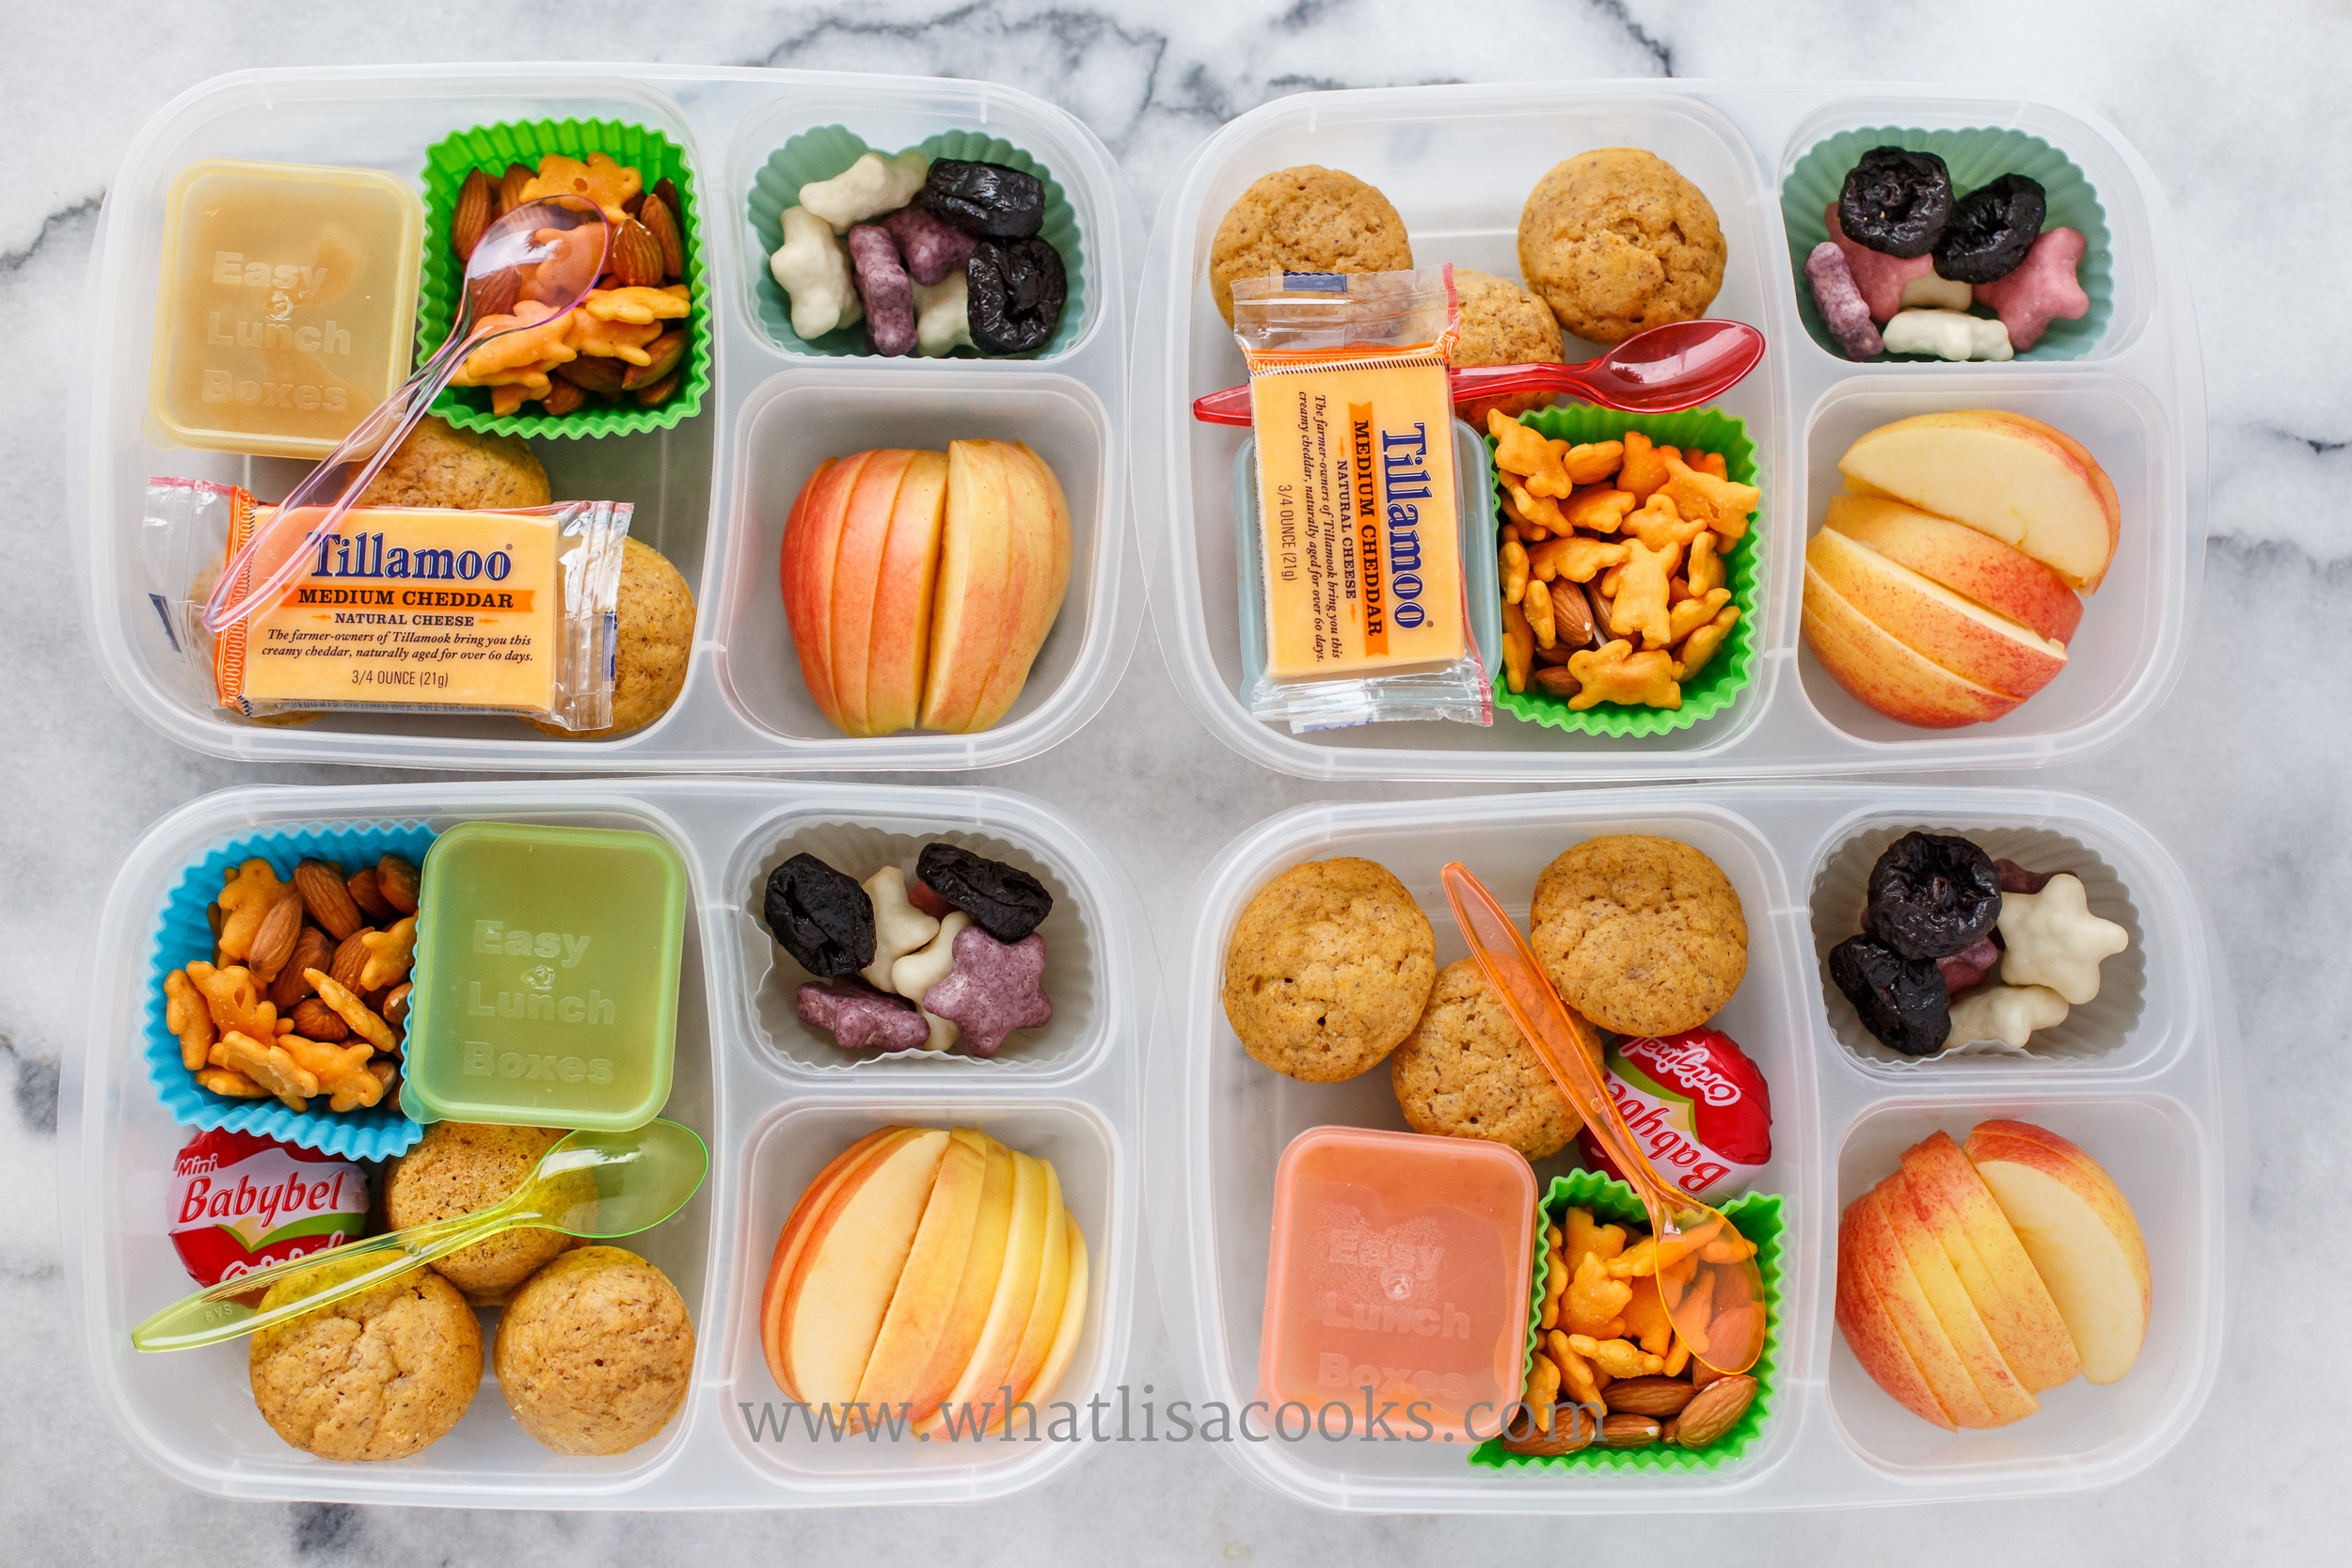 To make super quick lunches, cook up big batches of muffins and freeze. This lunch goes together in no time - muffins from the freezer, homemade applesauce, cheese, crackers, prunes, apples, and a few cookies.